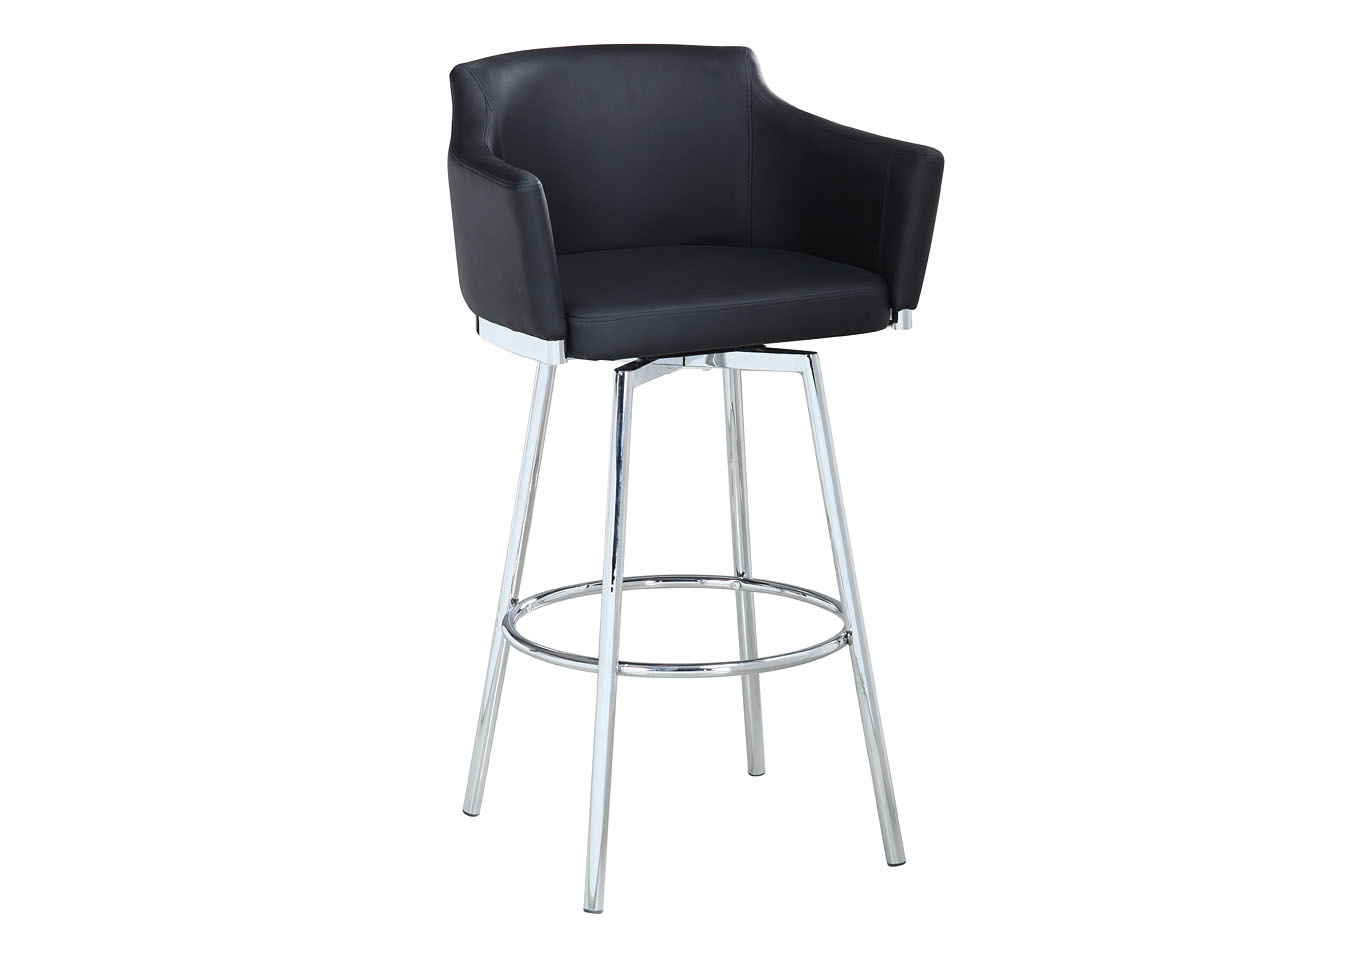 Dusty Black Club Bar Stool w/ Memory Swivel,Chintaly Imports